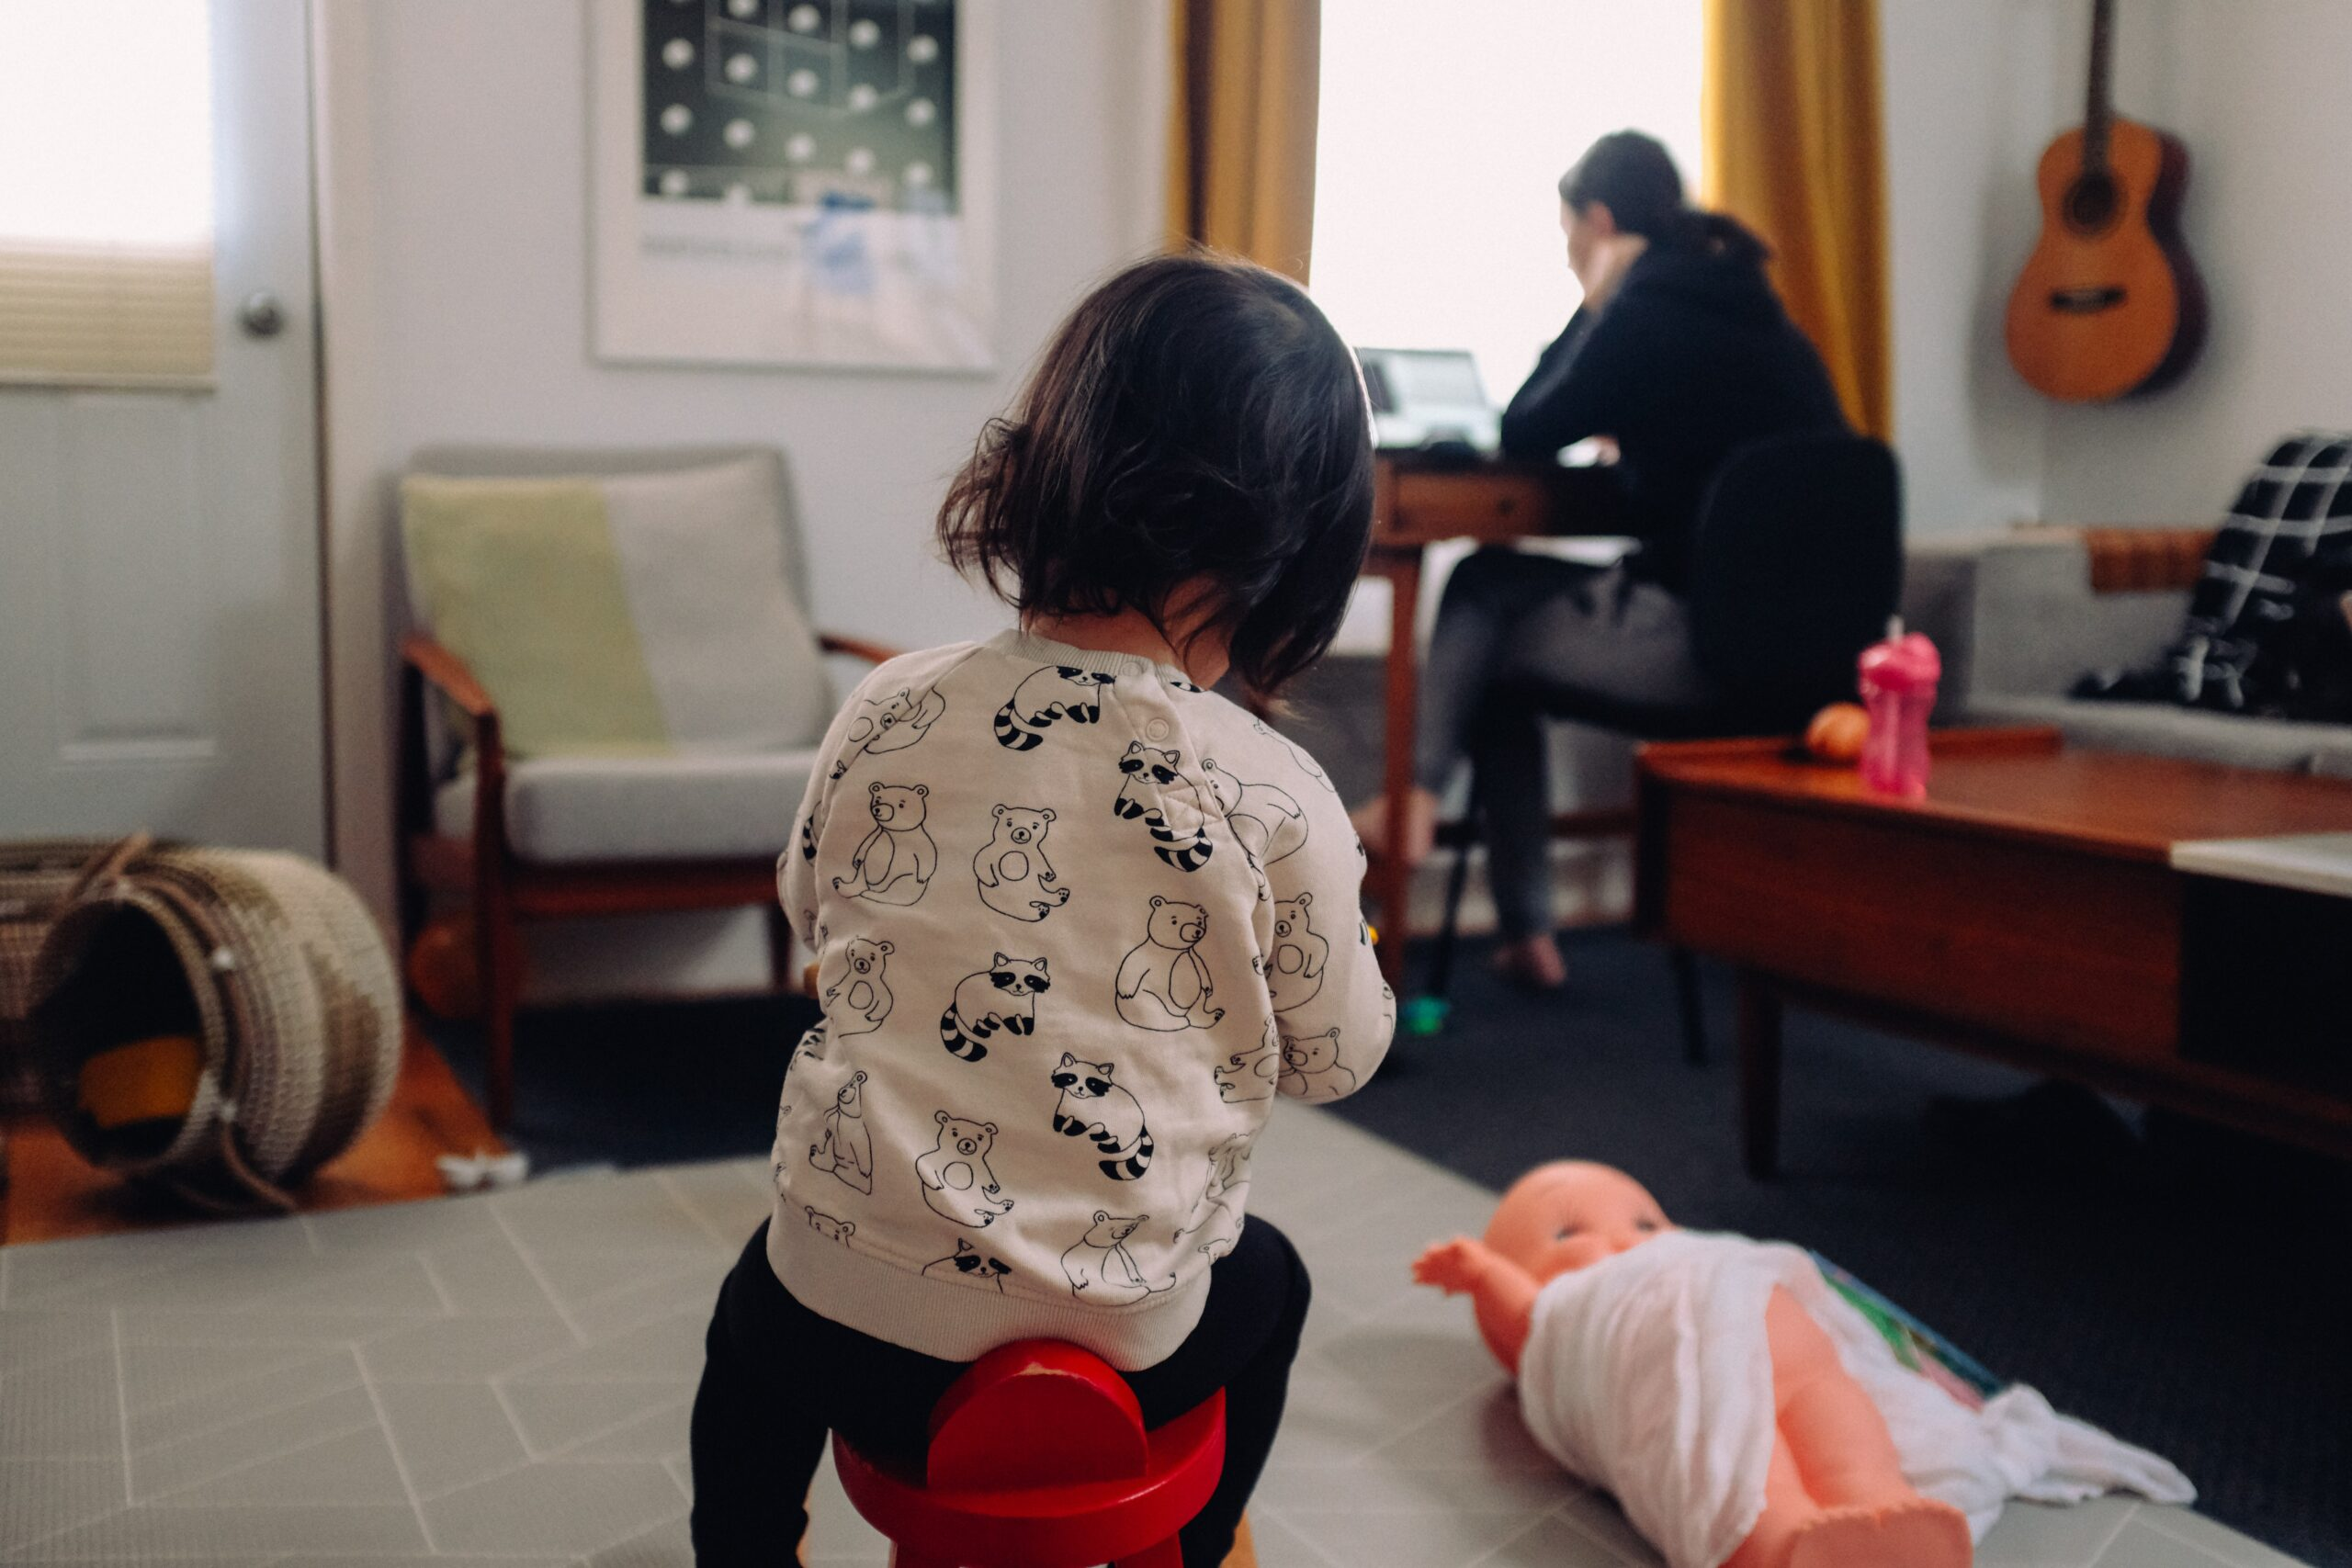 a child sits on a stool next to some toys while an adults works at a laptop